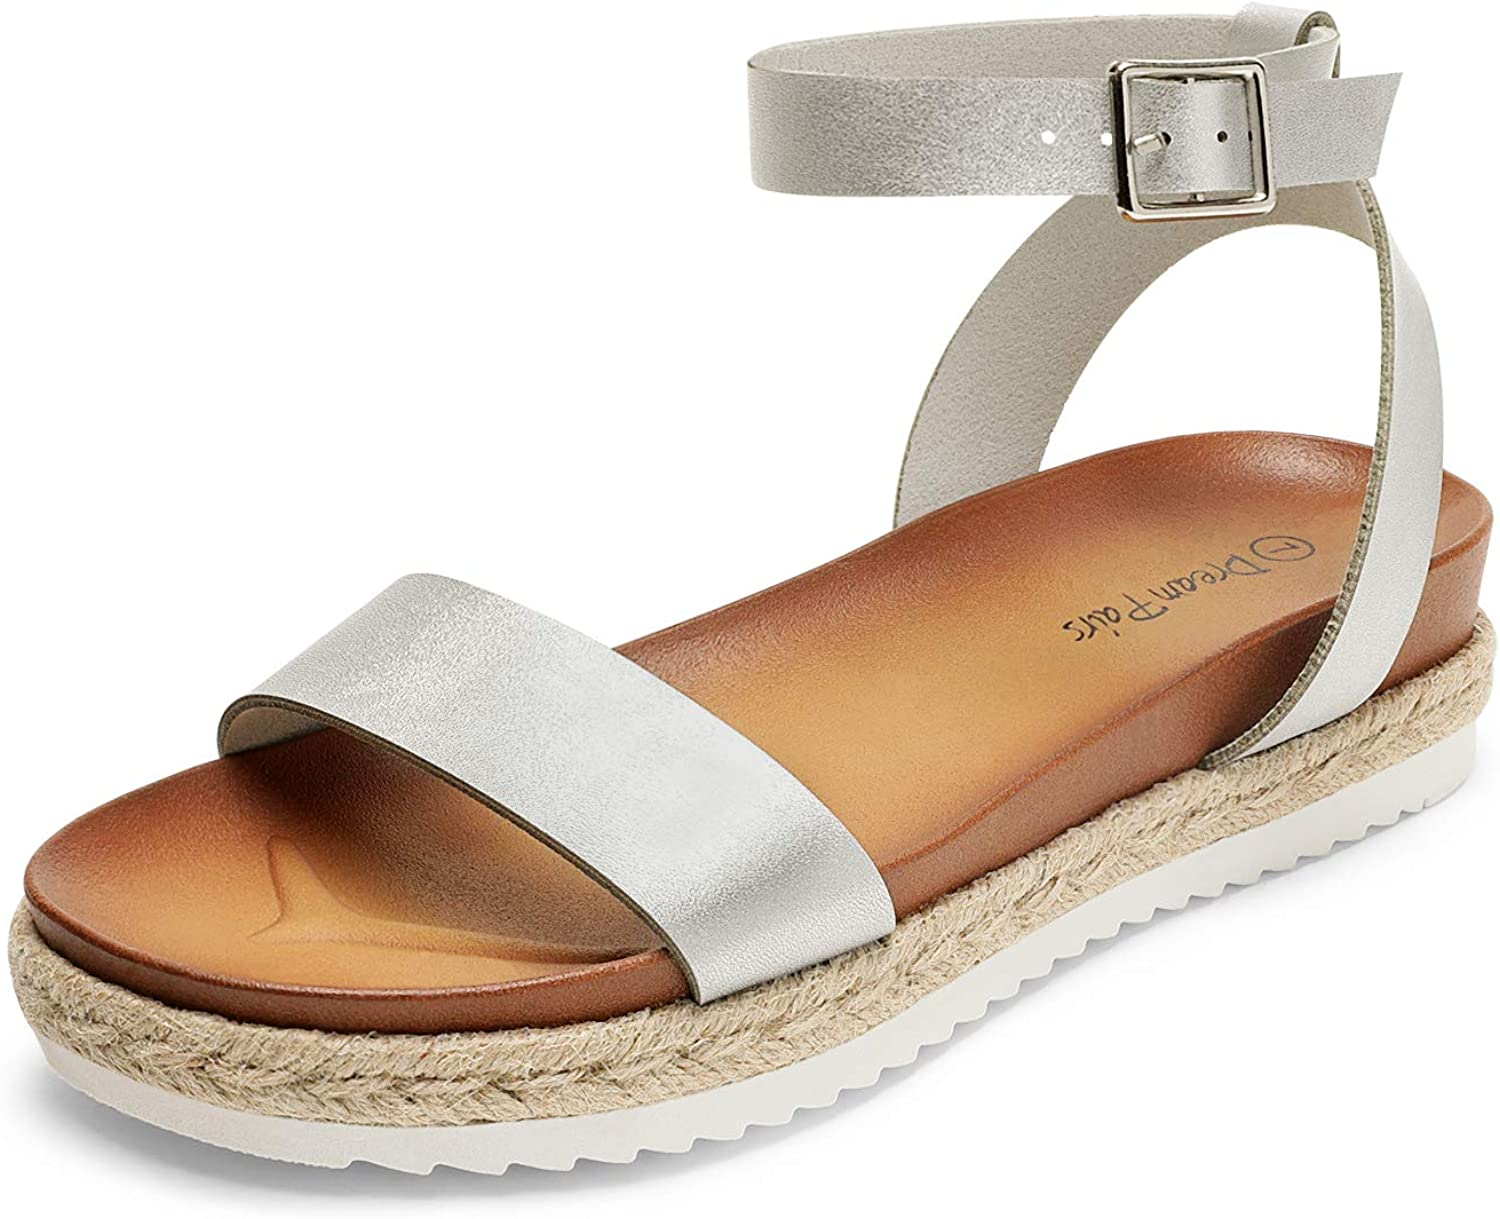 Sz 10M Details about  /Style /& Co Mulan Wedge Open Toe Casual Platform Sandals French Vanilla